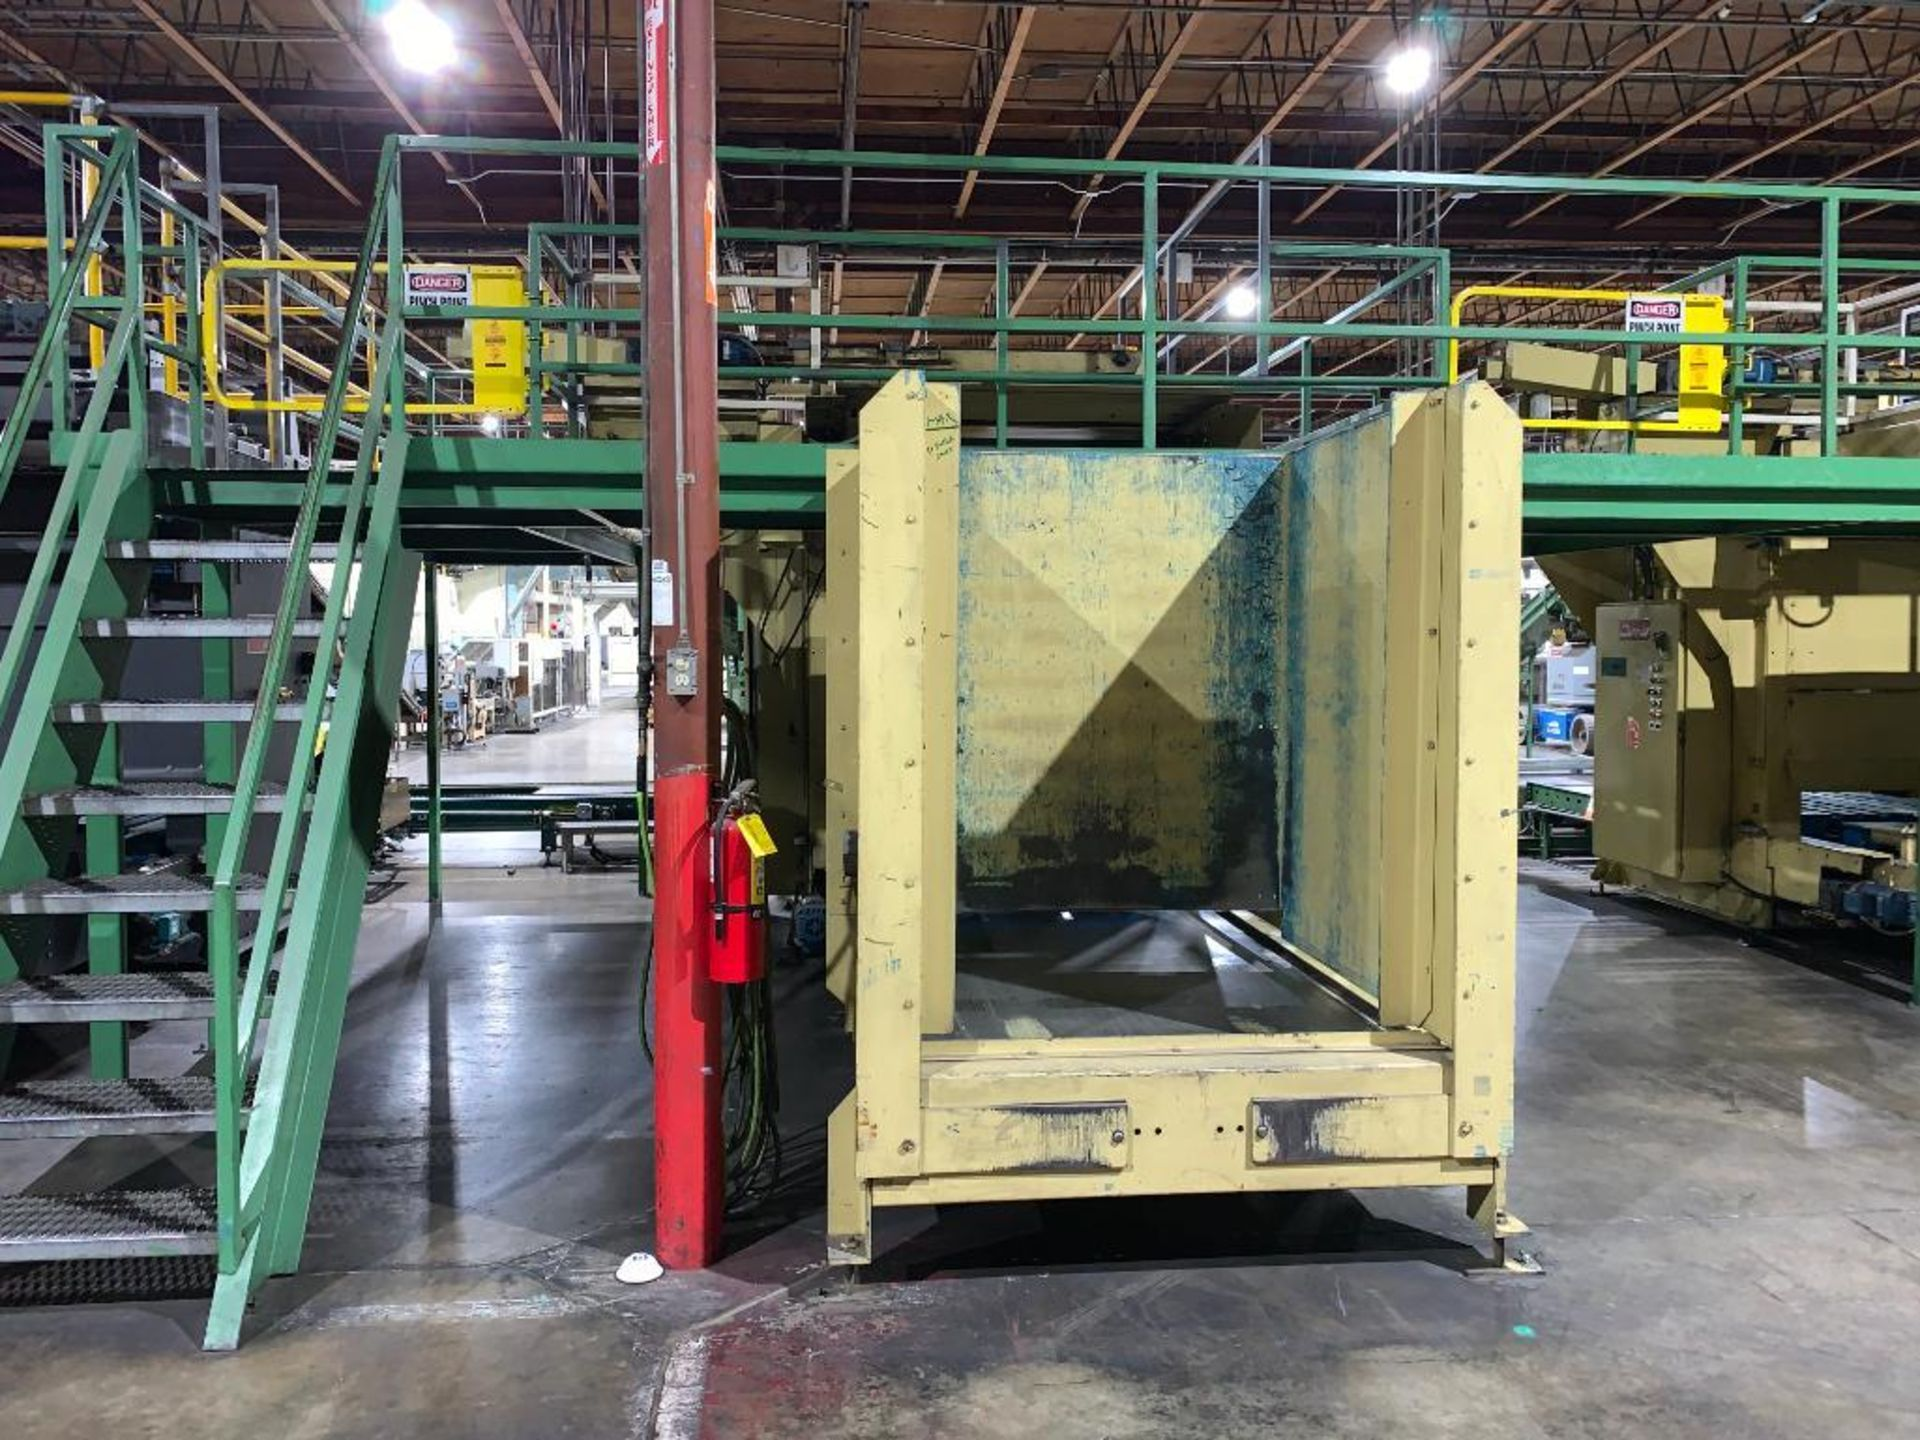 1992 Currie top to bottom palletizer, machine number LSP-5-1176 - Image 2 of 56